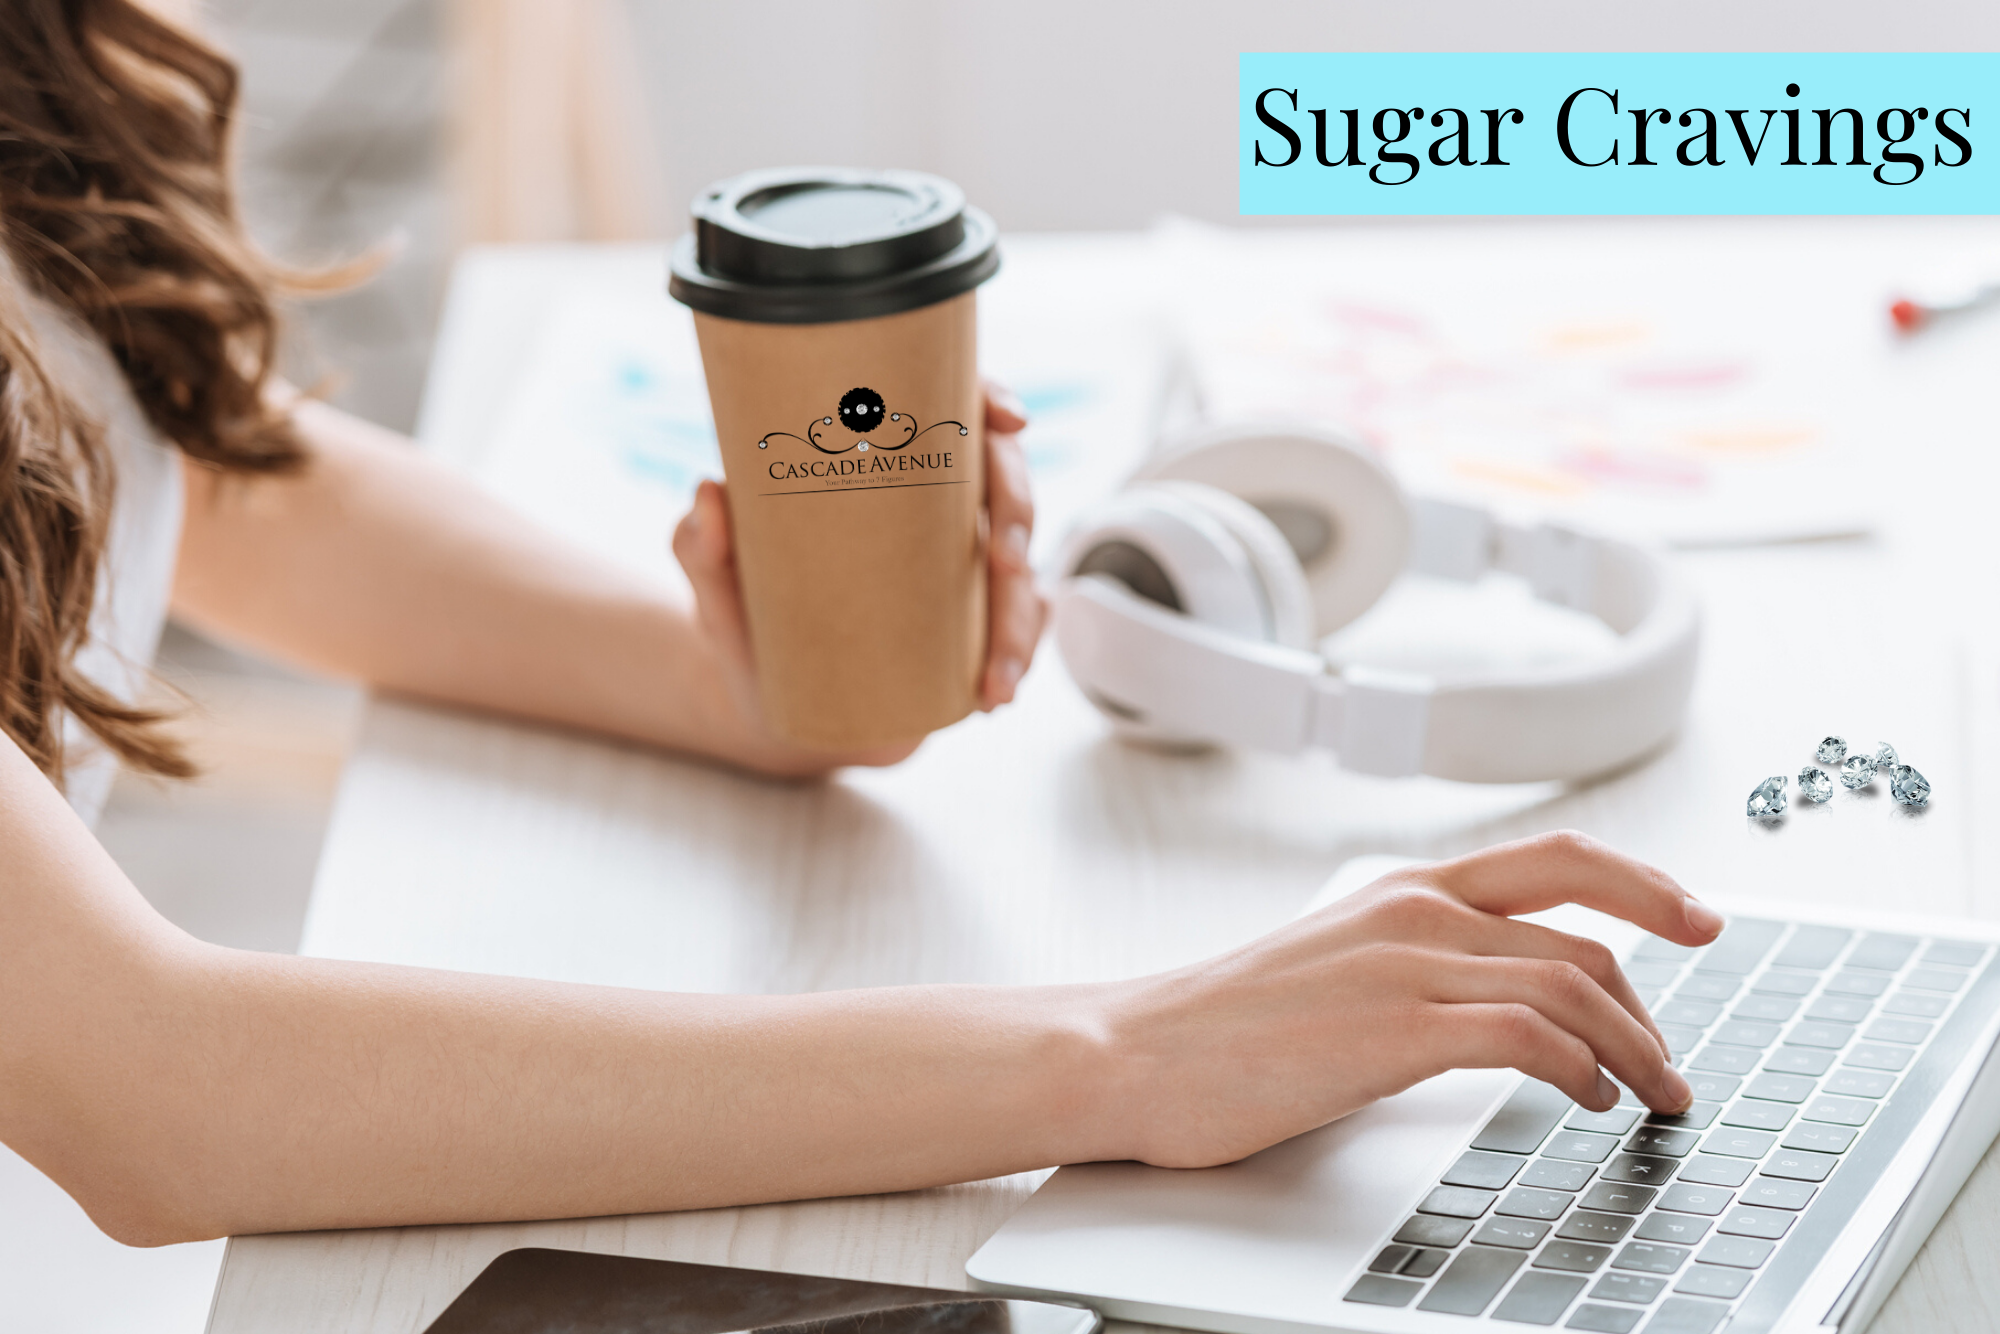 sugar addiction detox: How to Prevent Your Afternoon Sugar Cravings and Energy Crash!